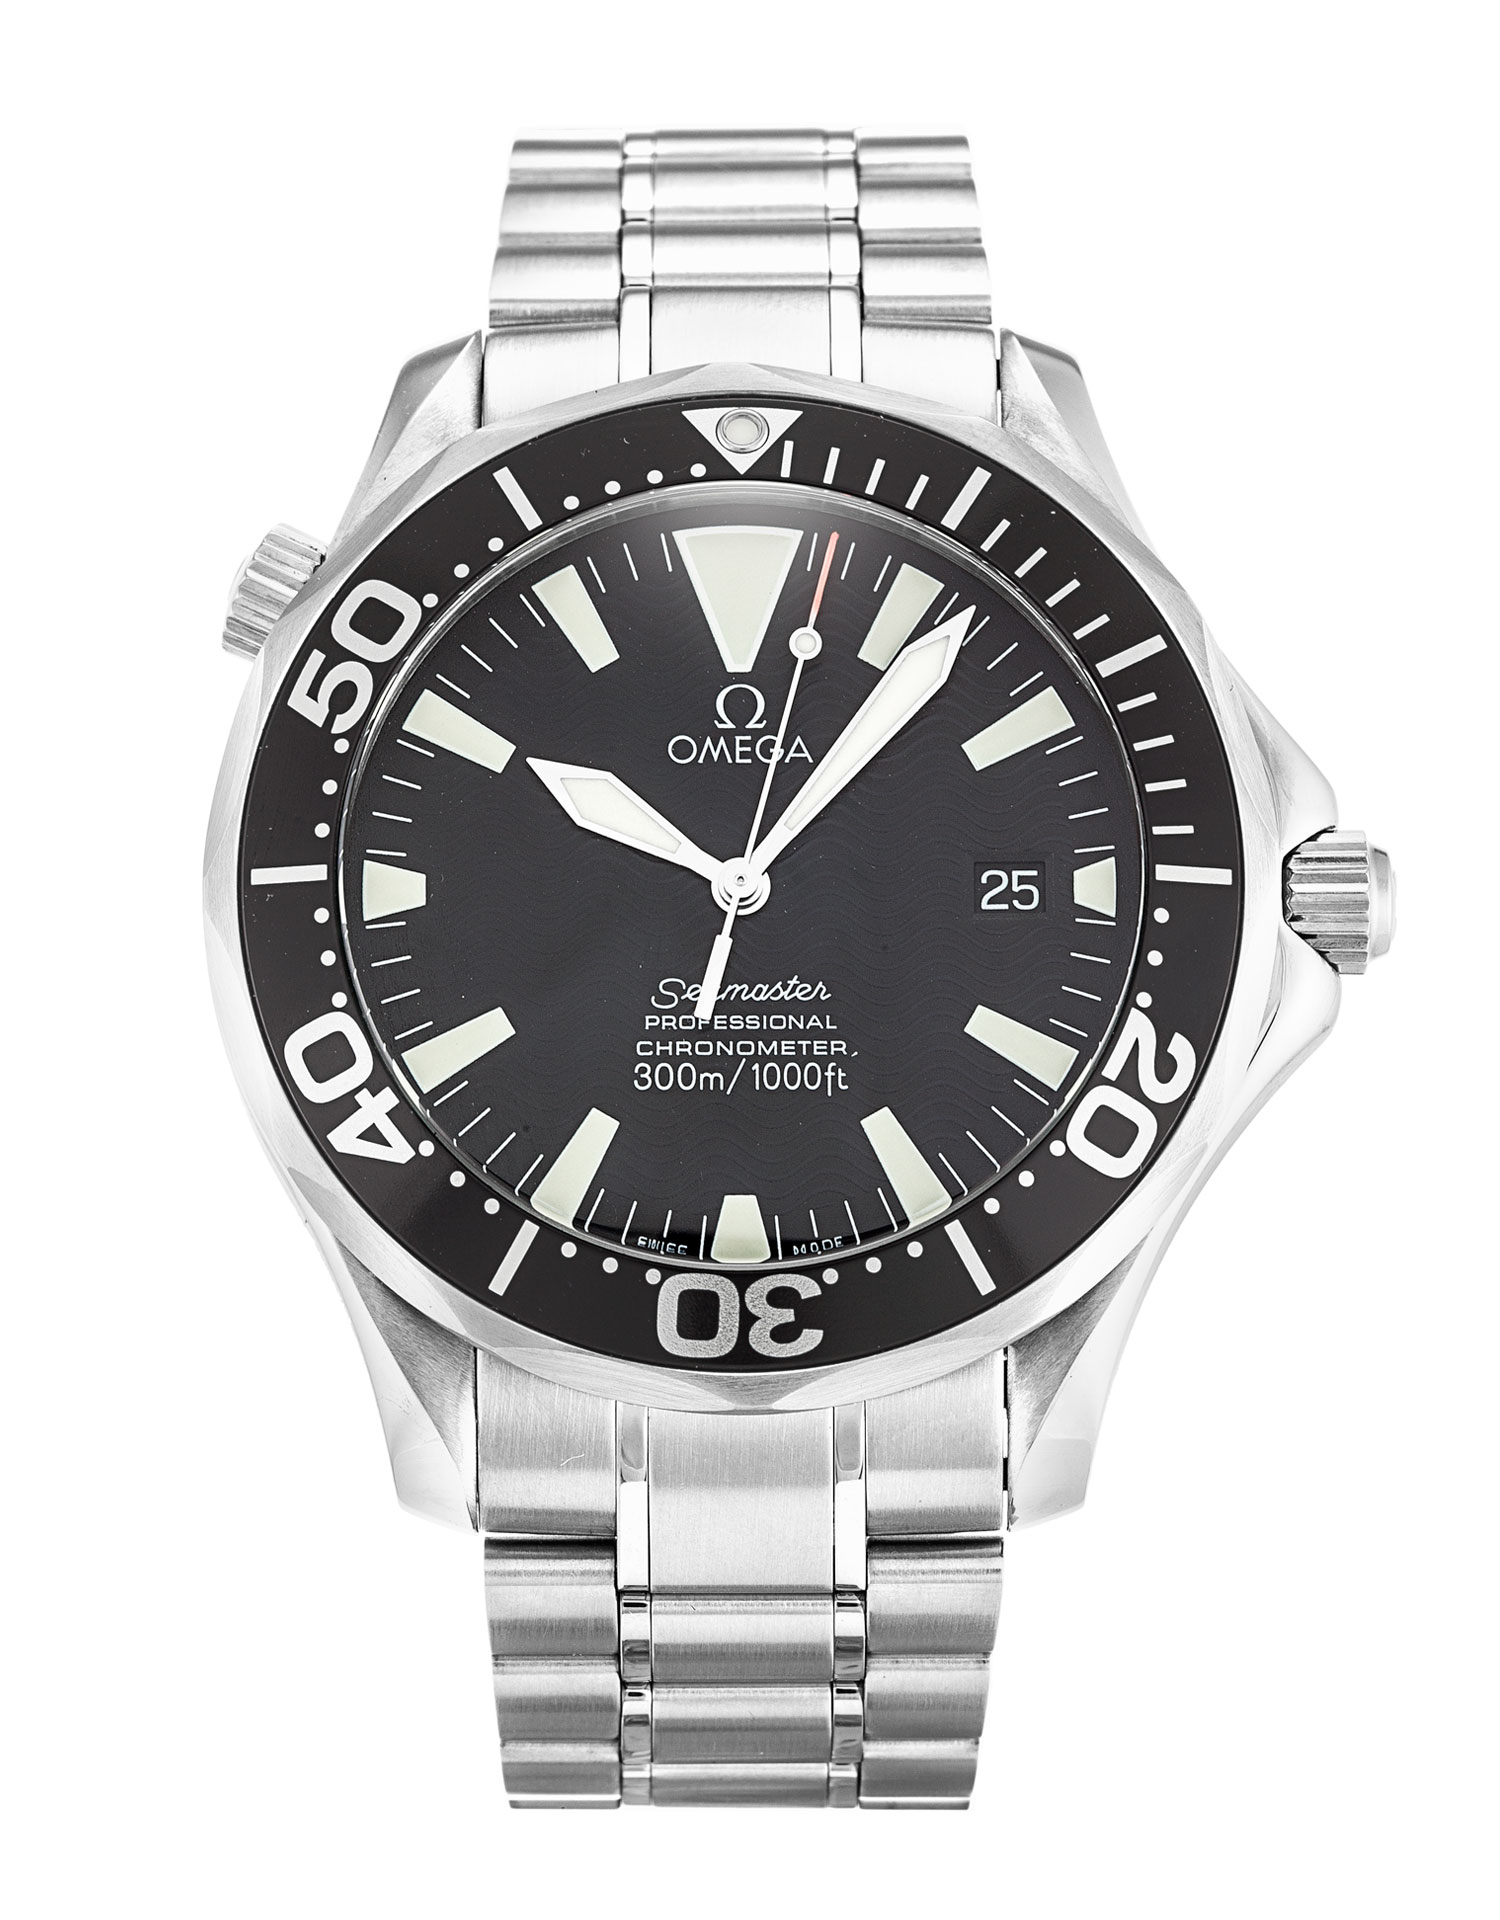 Omega Seamaster 300m 2254.50.00 Mens 41 Mm Steel Case Automatic Movement – iapac.to